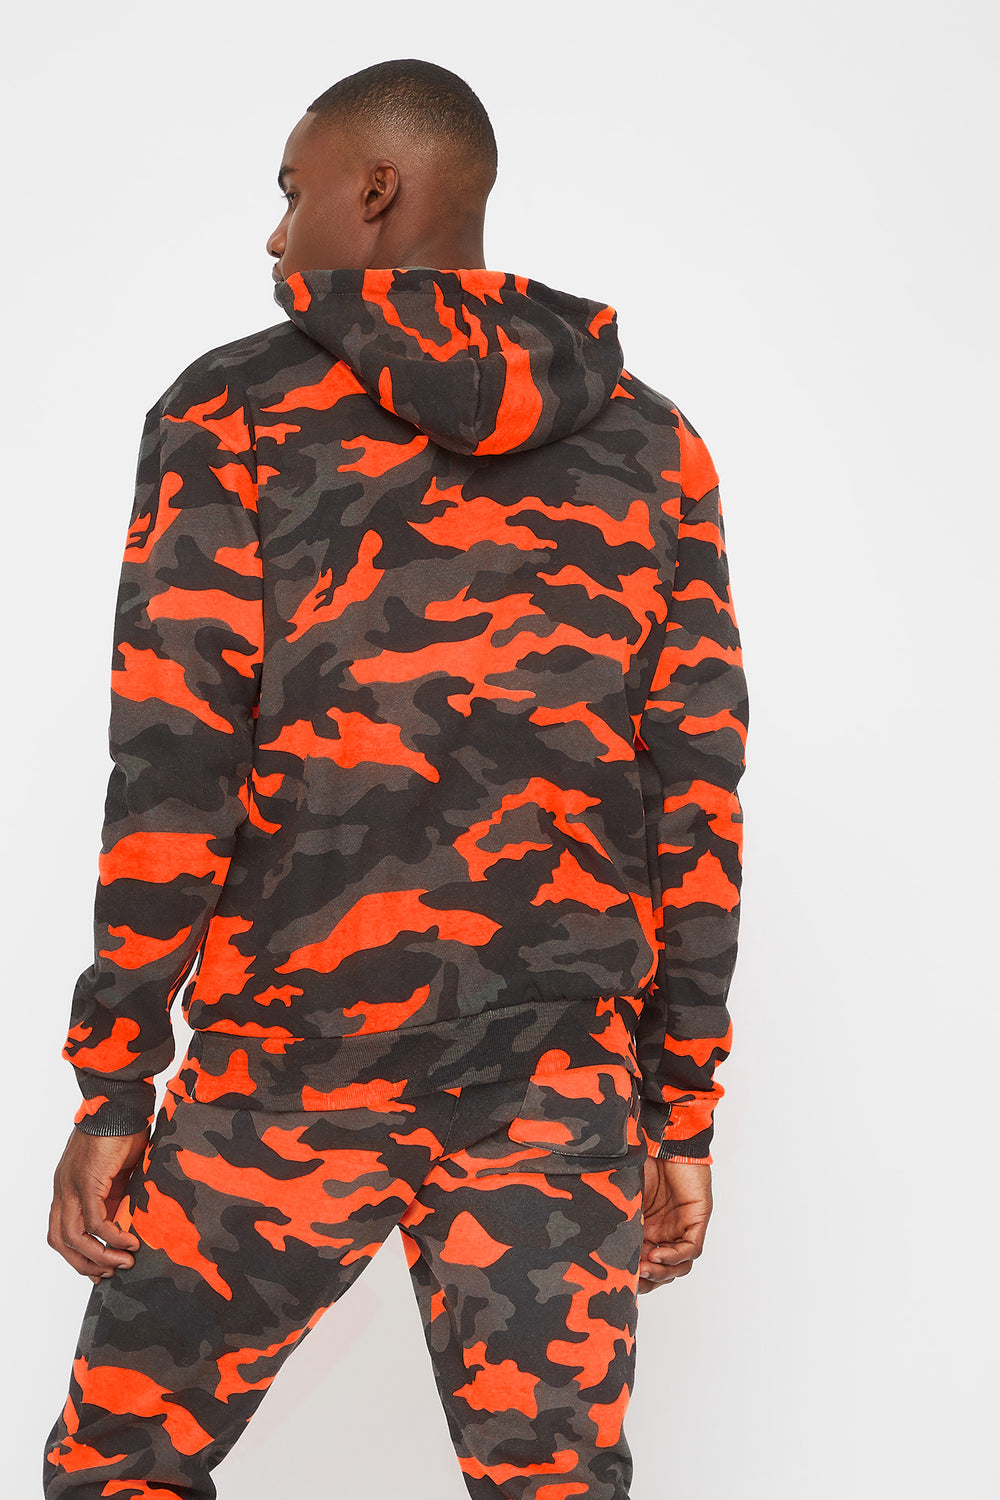 Camo Printed Hoodie Black with White